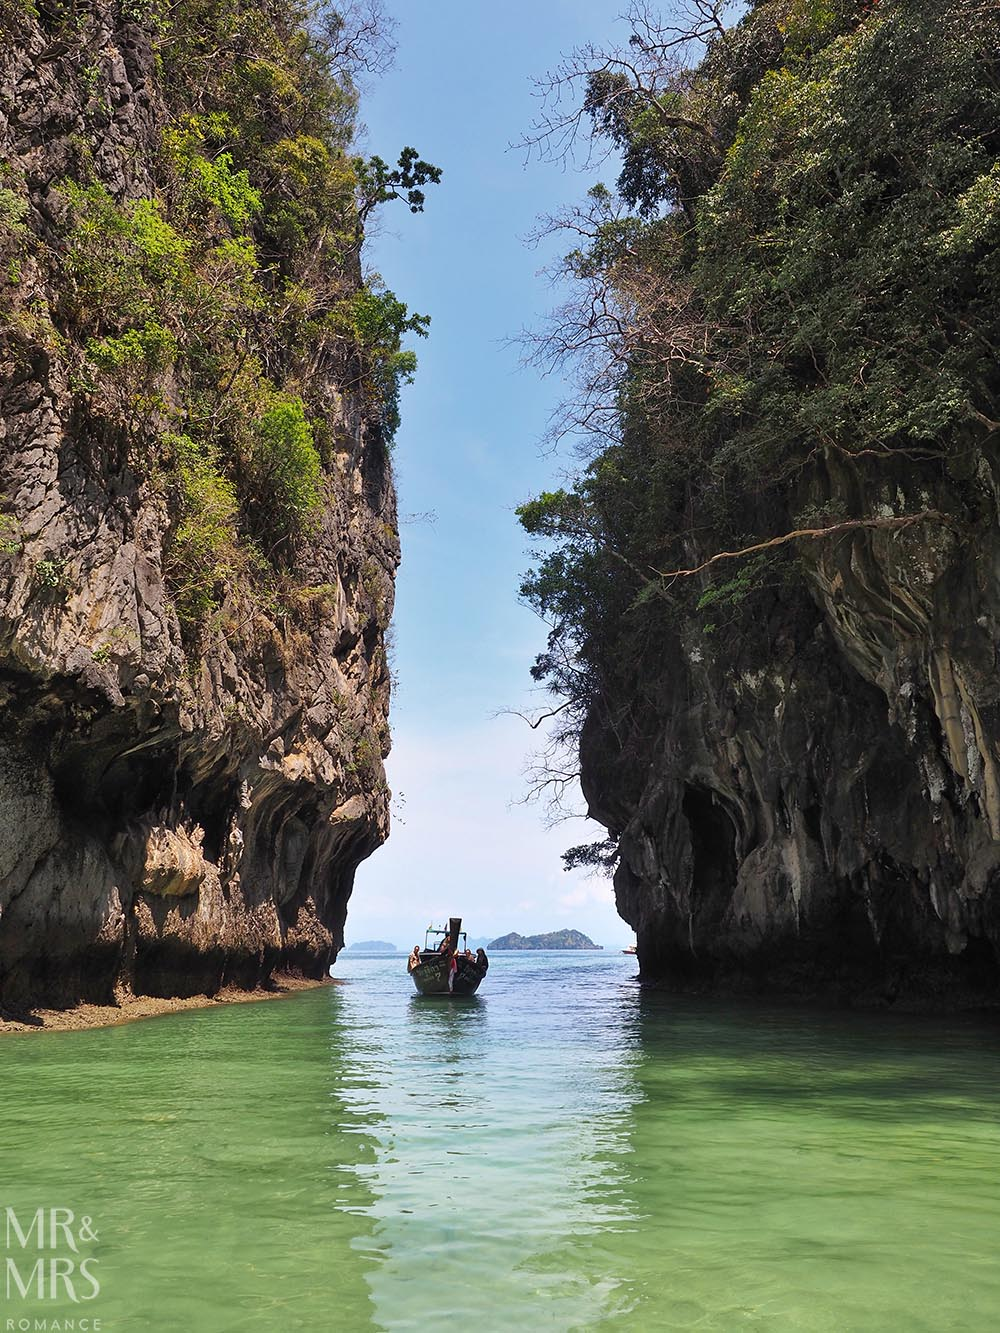 Ko Hong inlet - is it safe to travel to Thailand